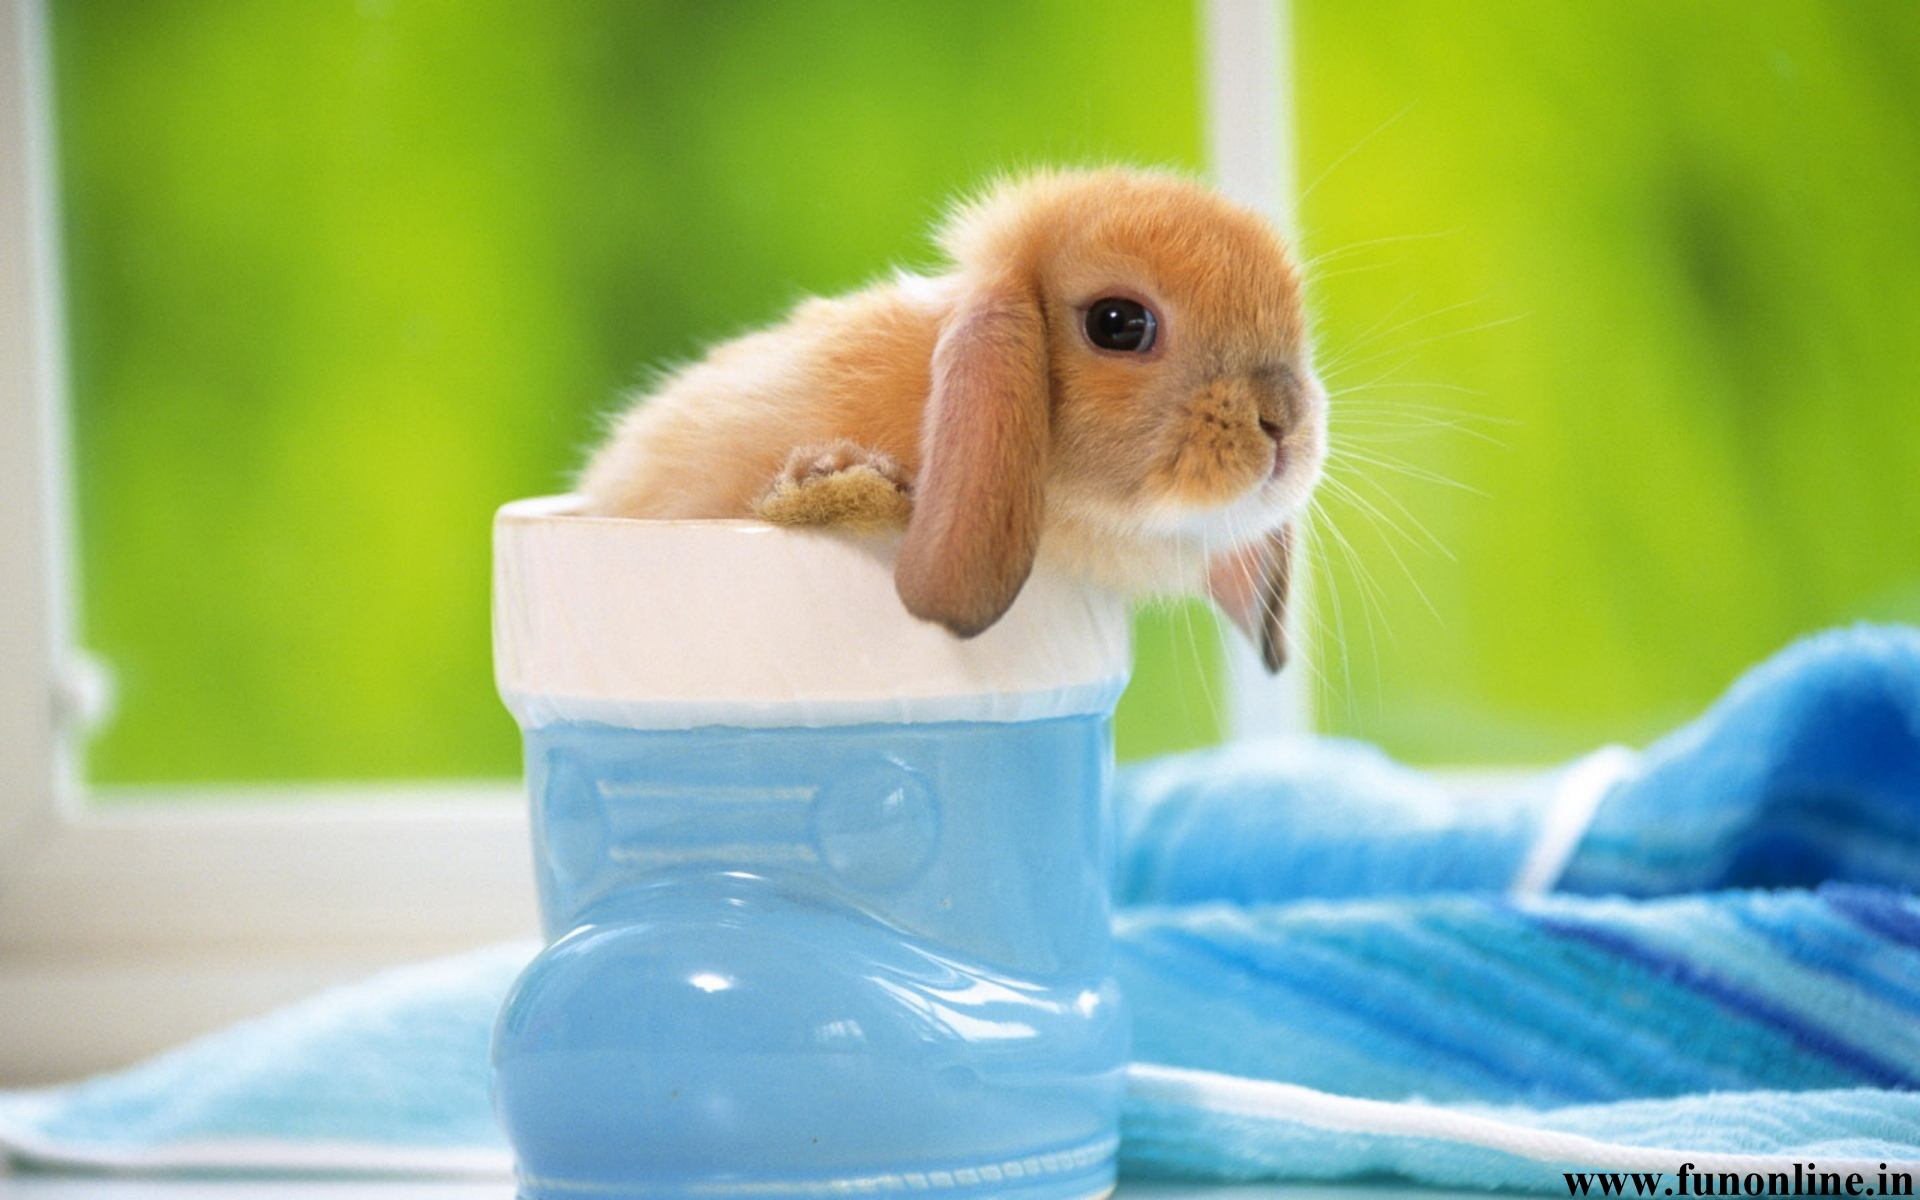 Free Download Rabbit Wallpapers Download Cute Baby Rabbits